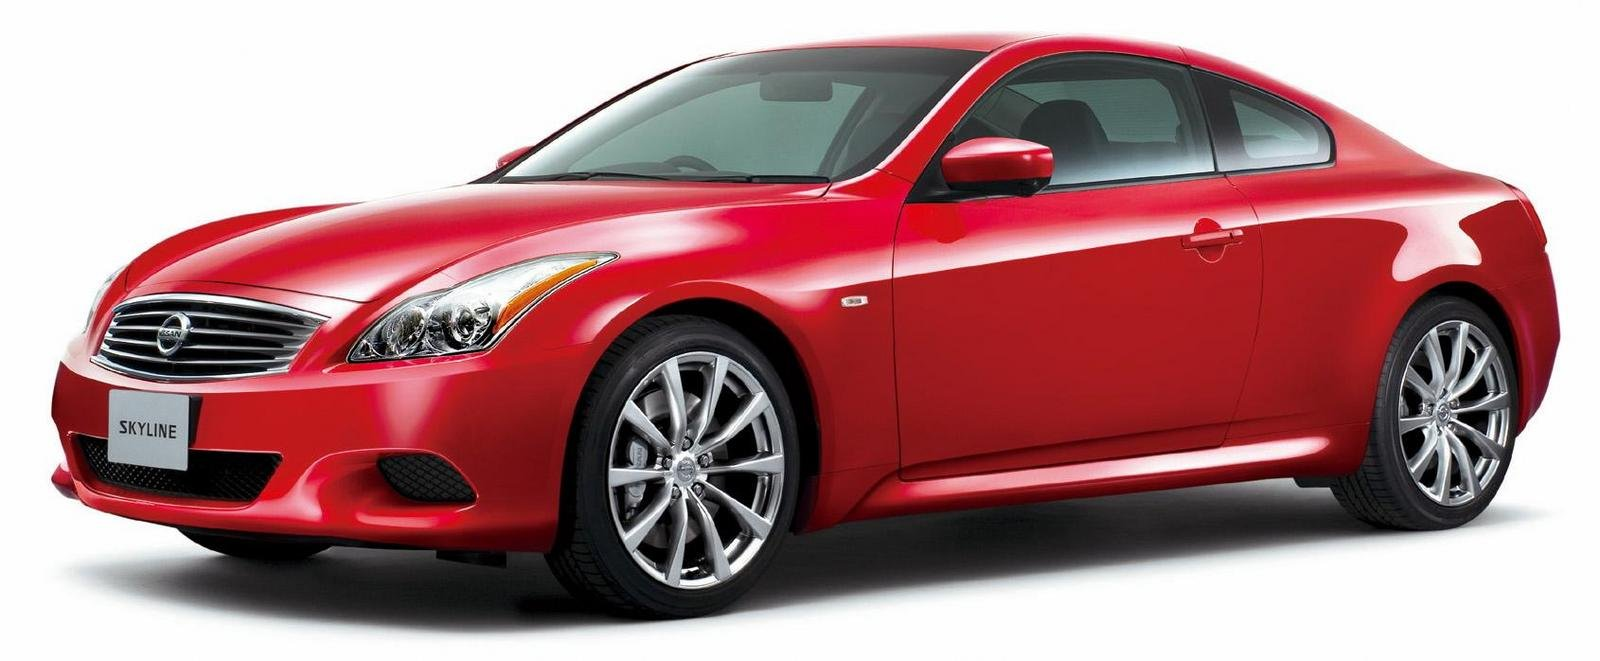 Coupe Vs Sedan >> 2008 Nissan Skyline Coupe Review - Top Speed